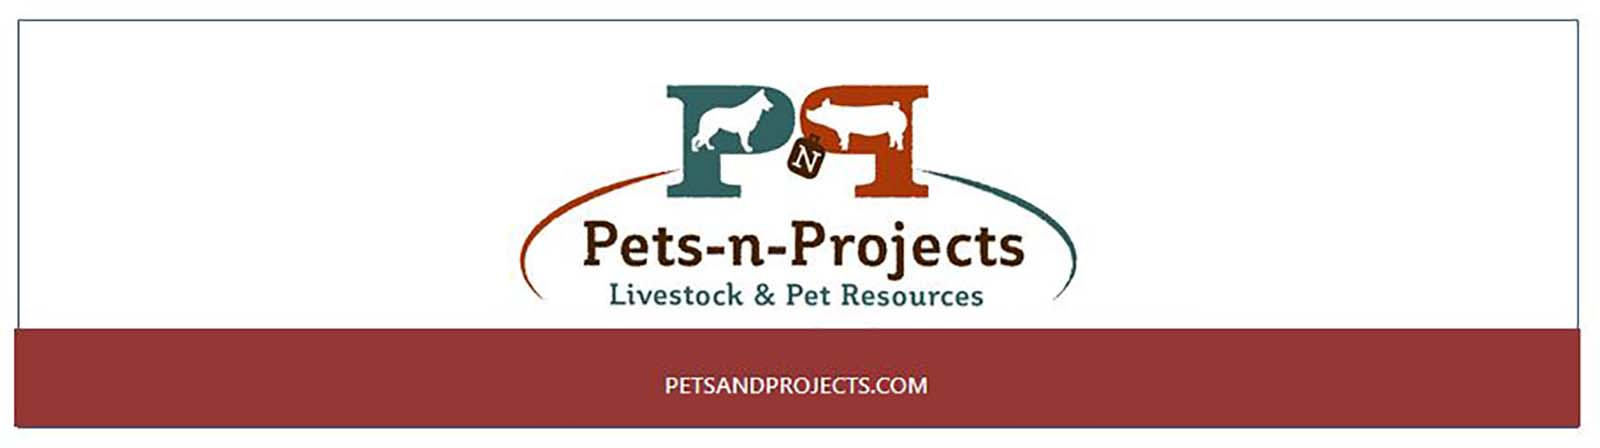 Petsandprojects Header - Berry1600